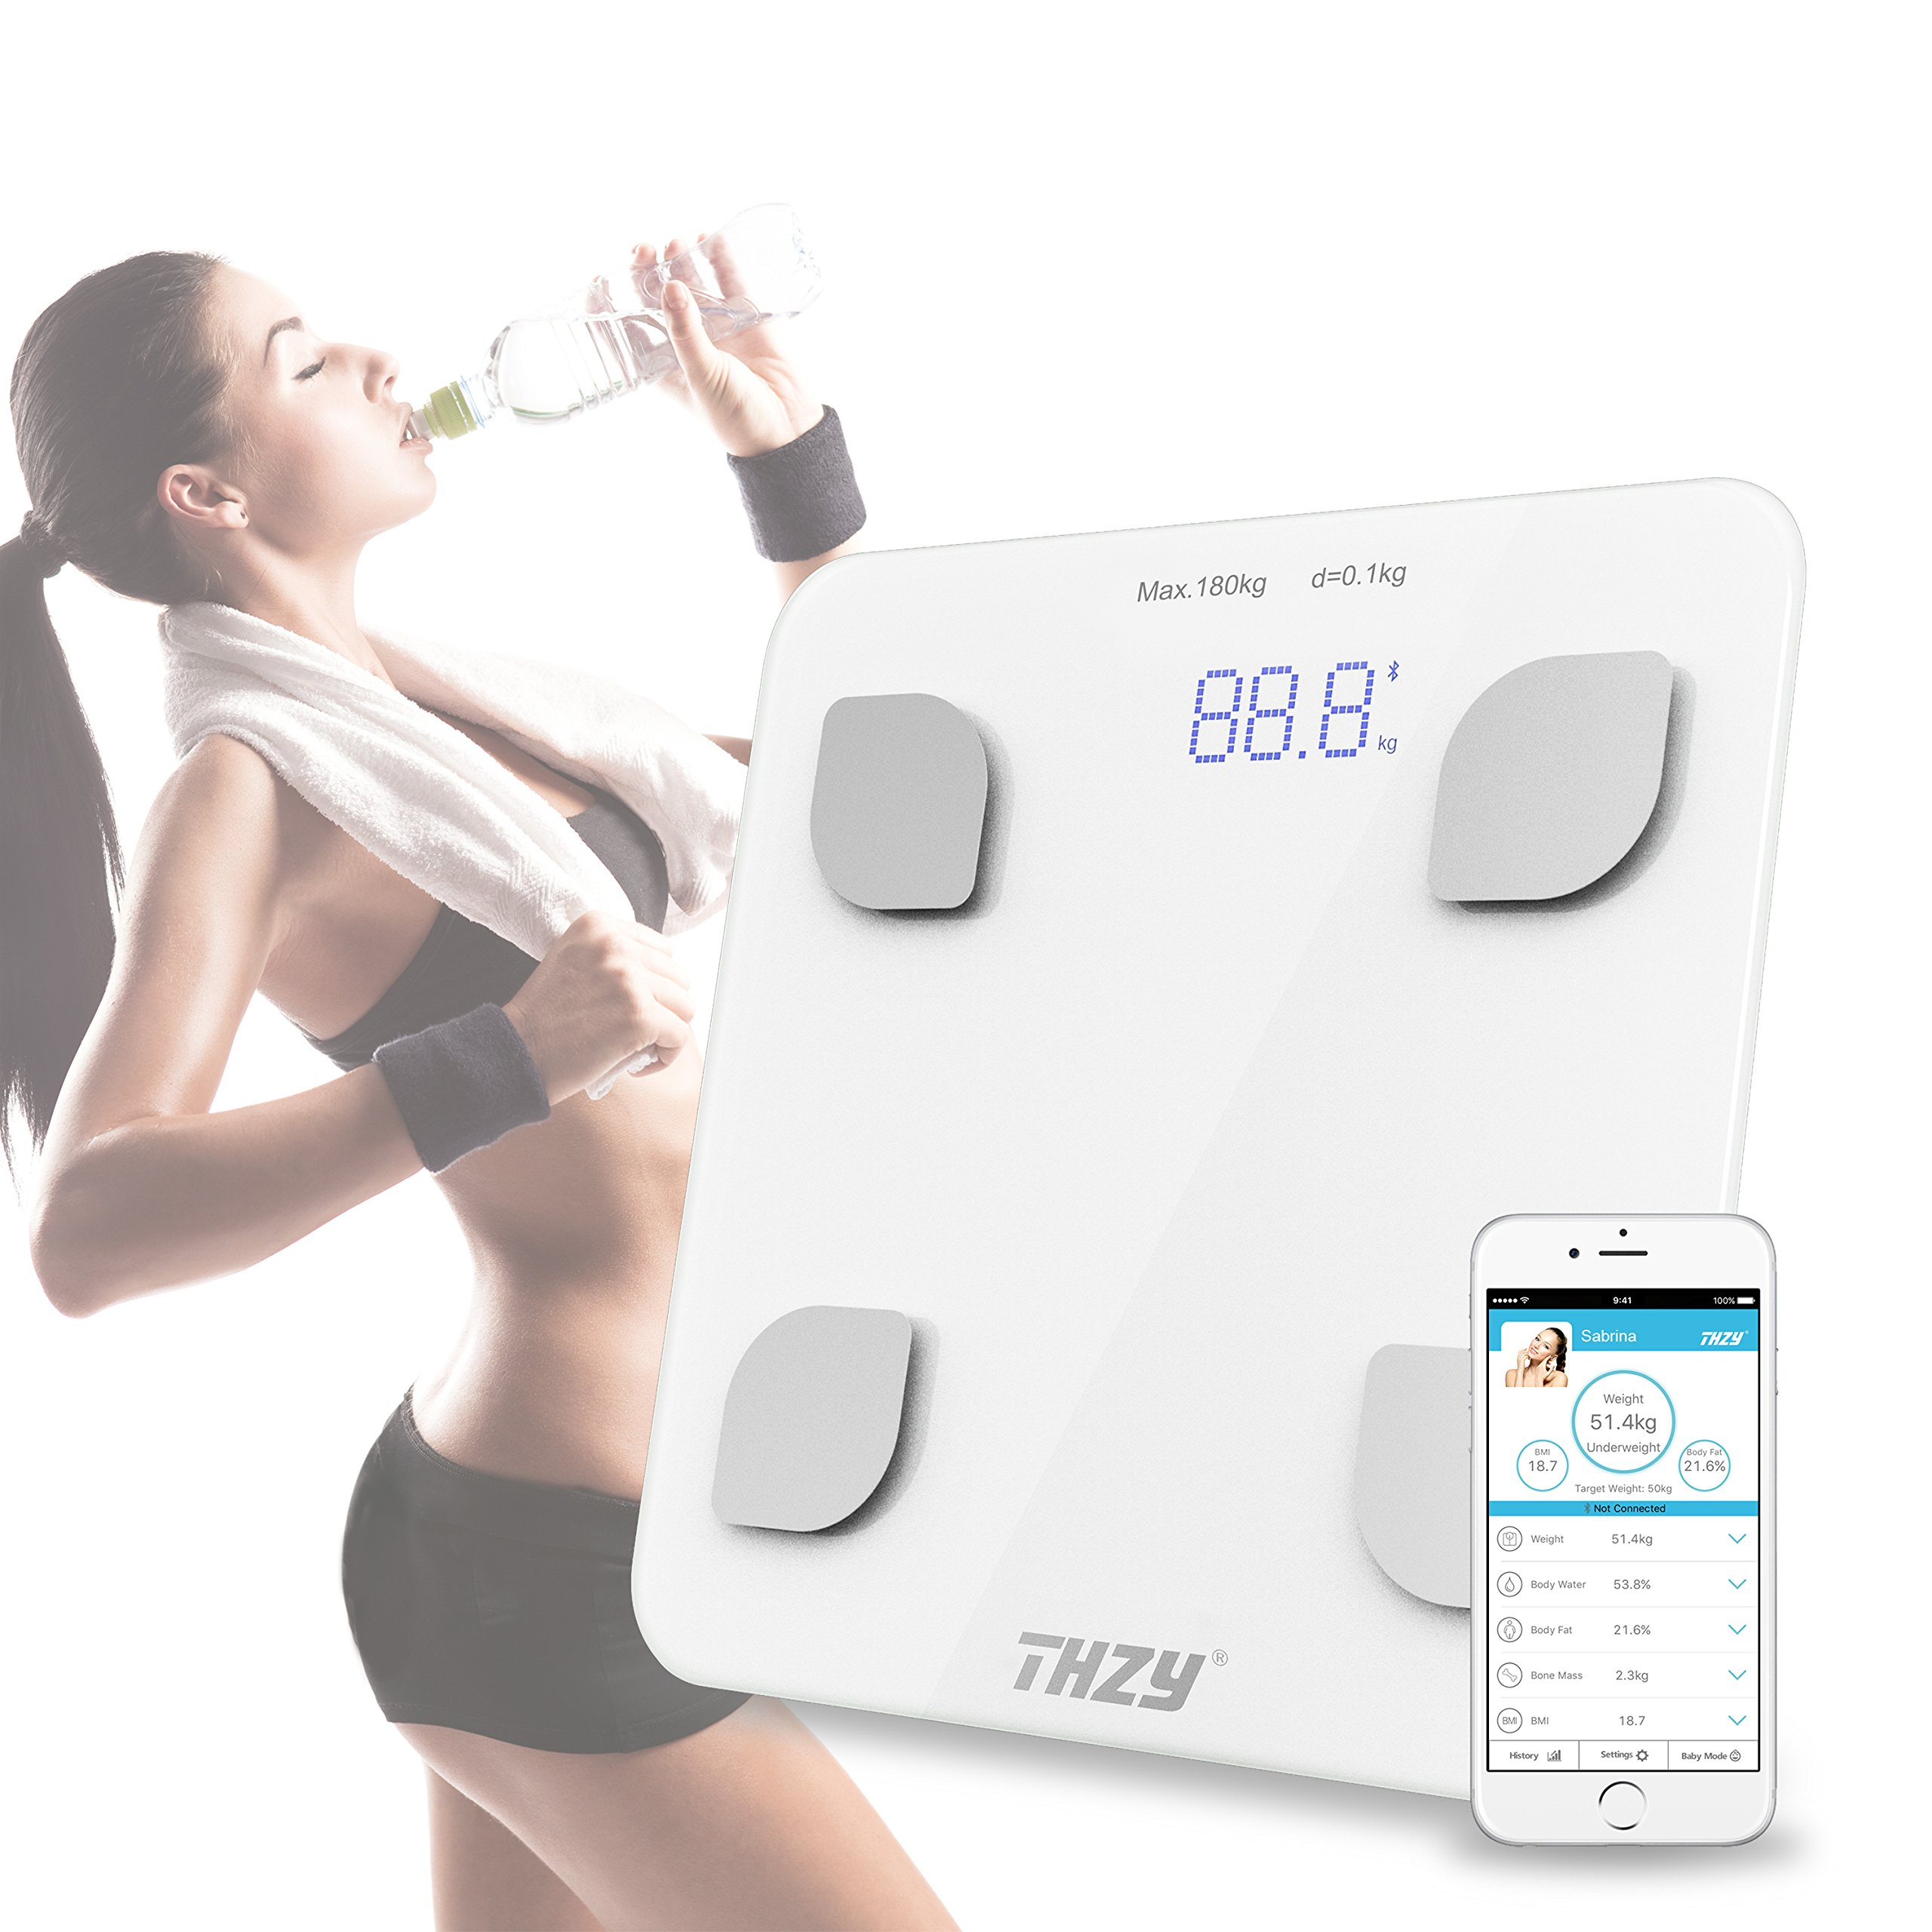 Bluetooth Body Fat Scale - Smart BMI Scale Digital Bathroom Wireless Weight Scale, Body Composition Analyzer with Smartphone App for Body Weight, Fat, Water, BMI, BMR, Muscle Mass, Visceral Fat